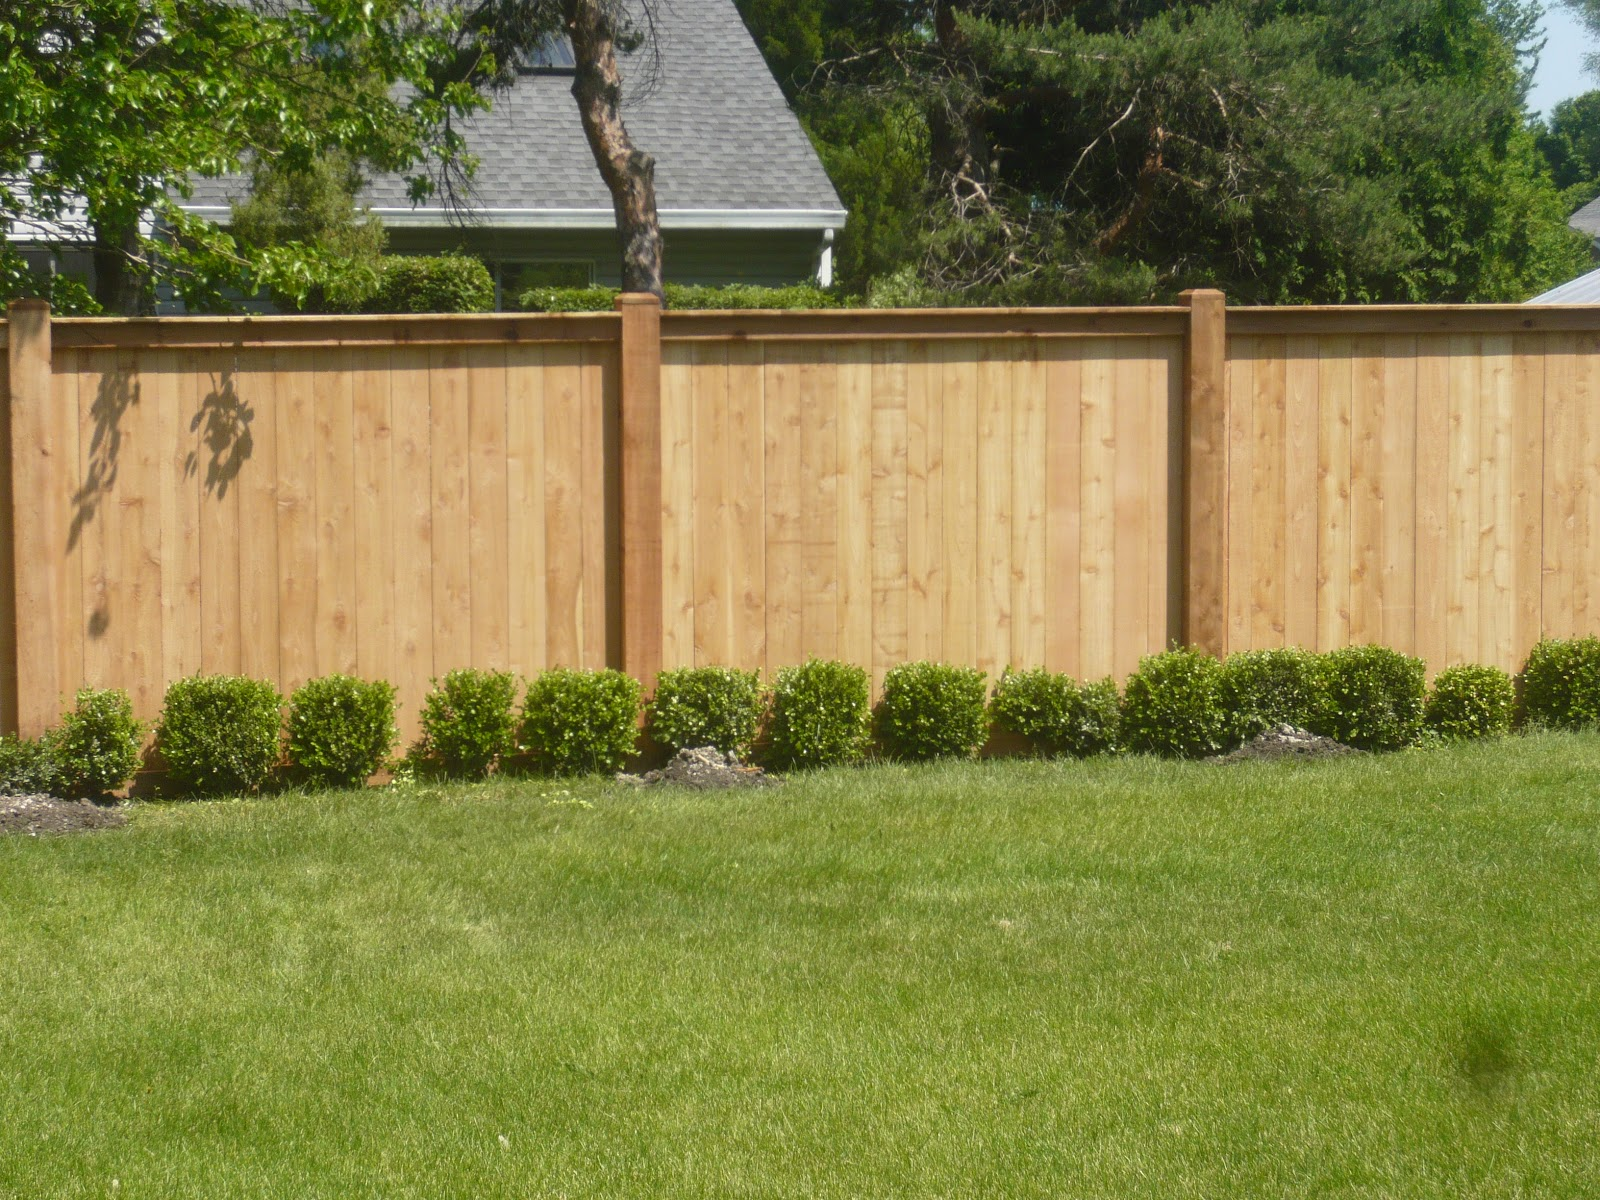 Genial Fence Ideas For Backyard